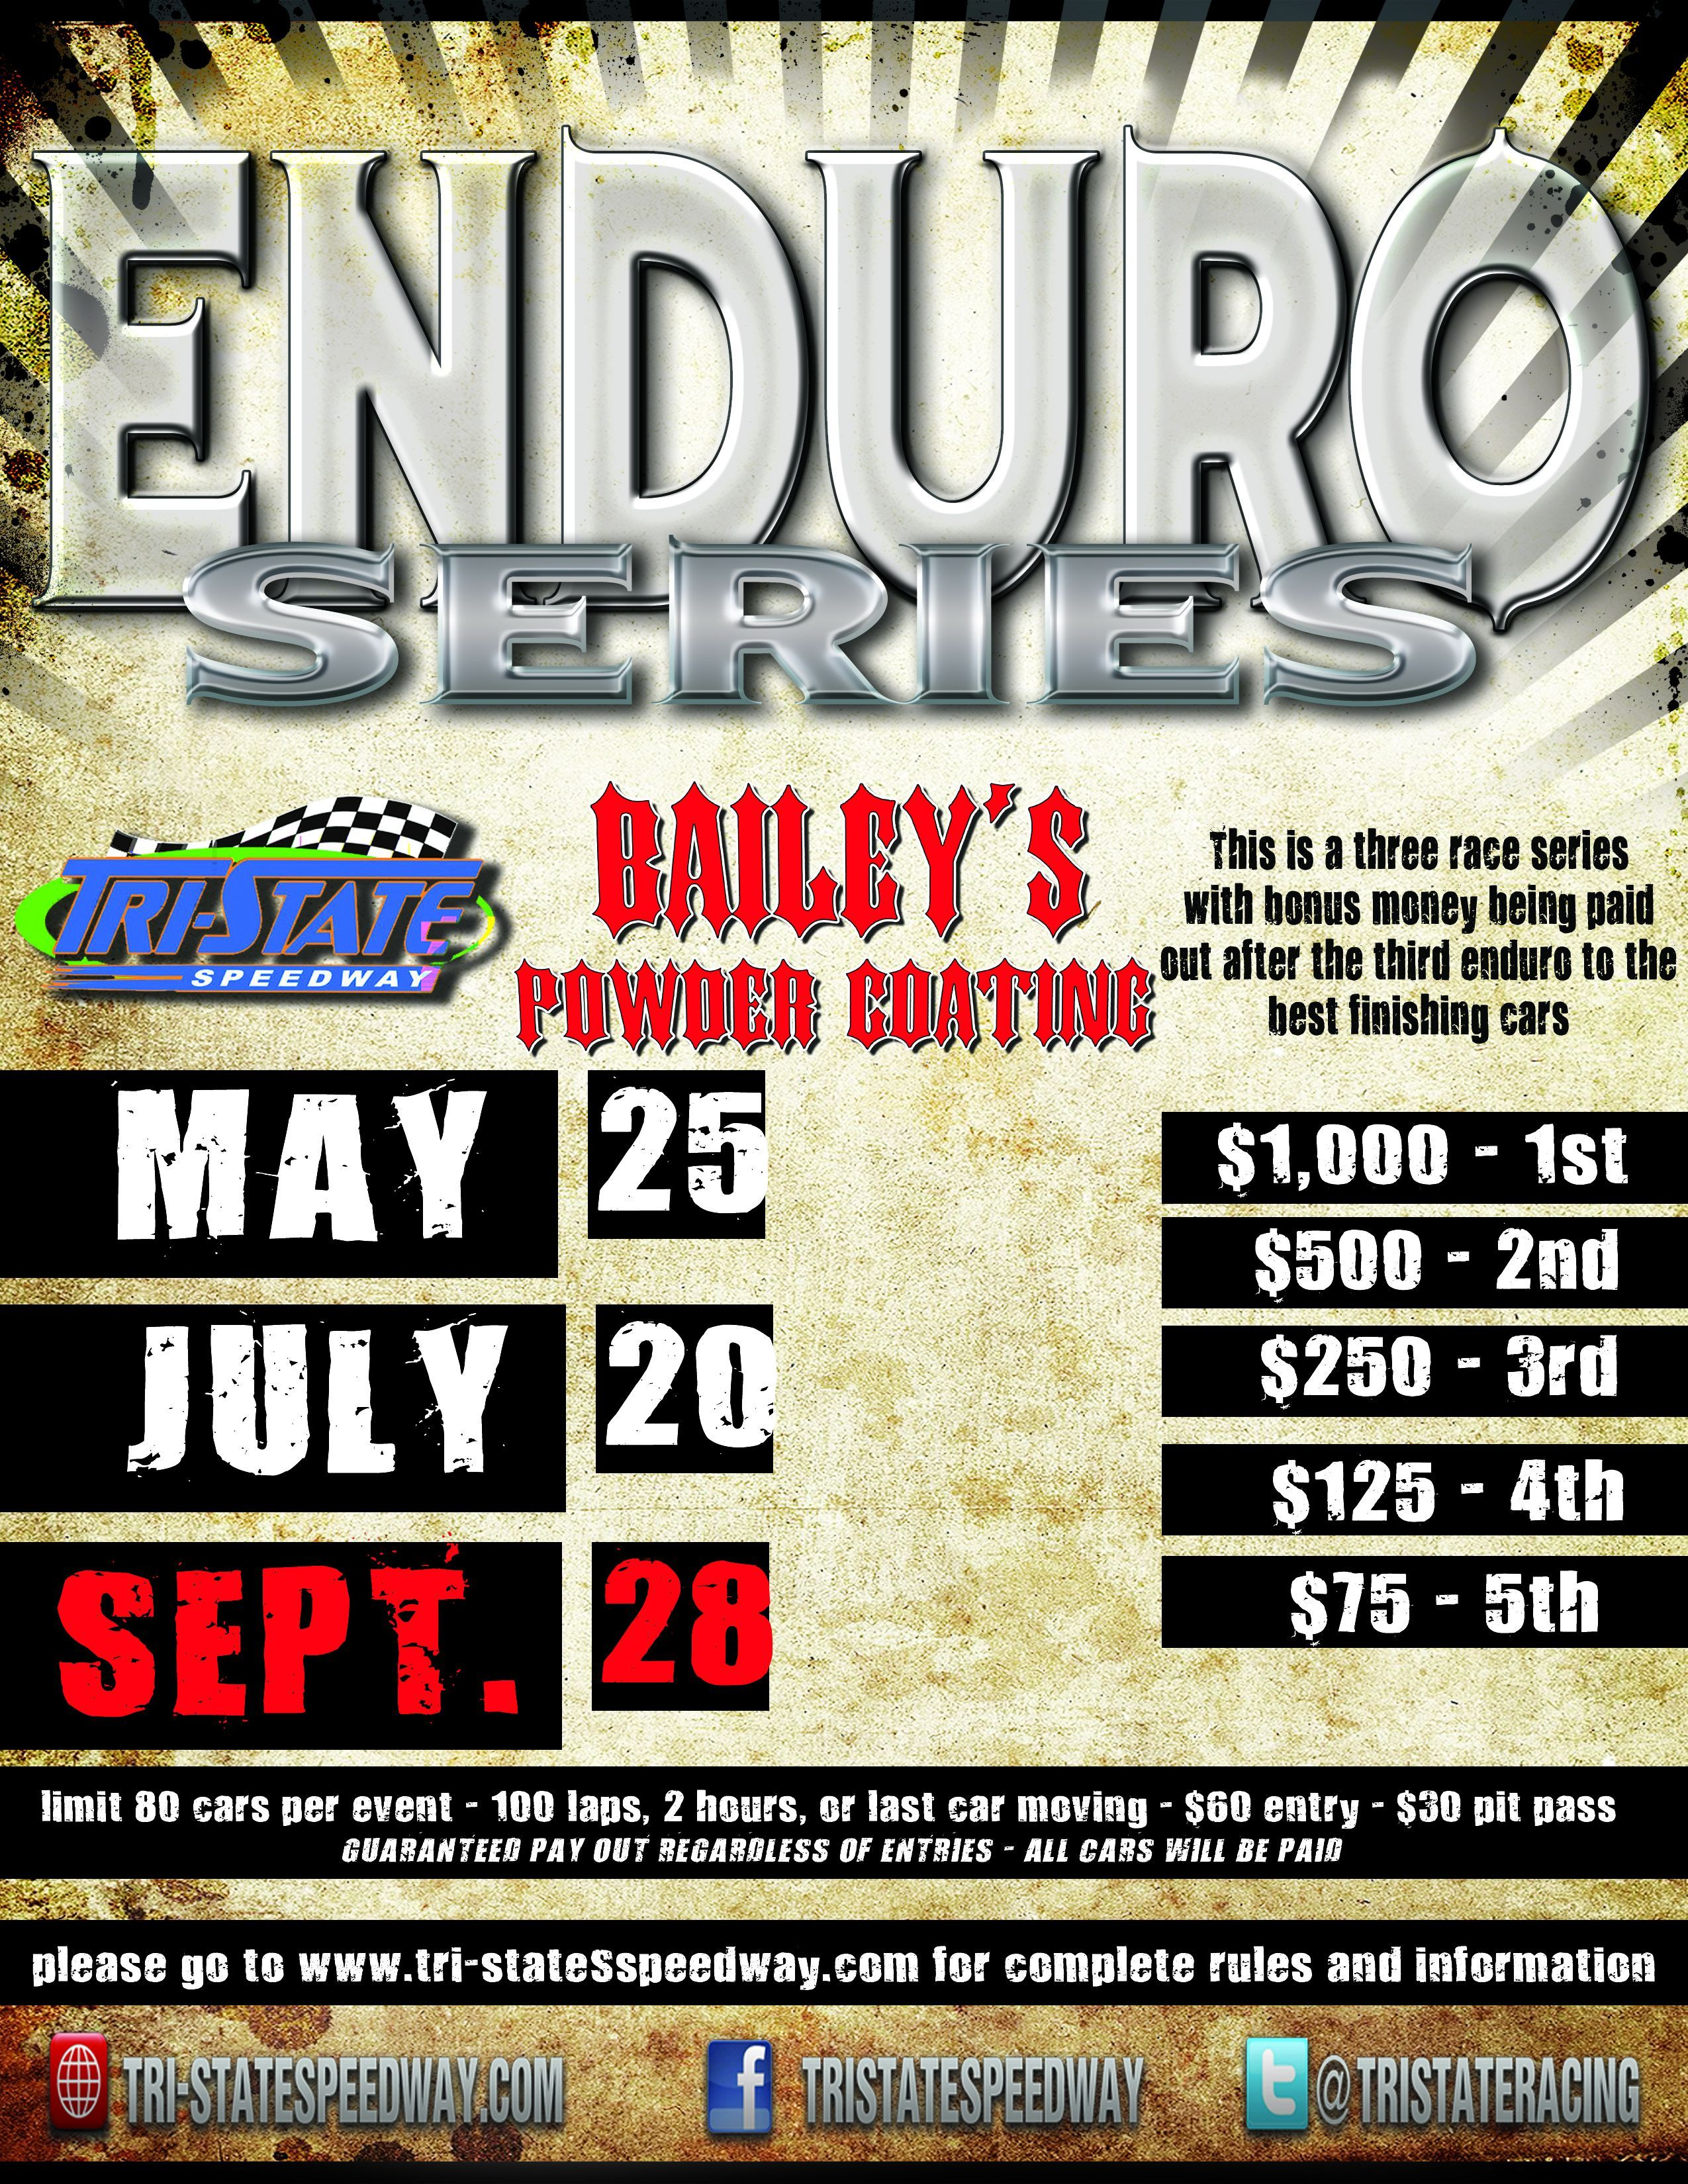 Enduro Series Race #3 and 43rd Annual Points Championship